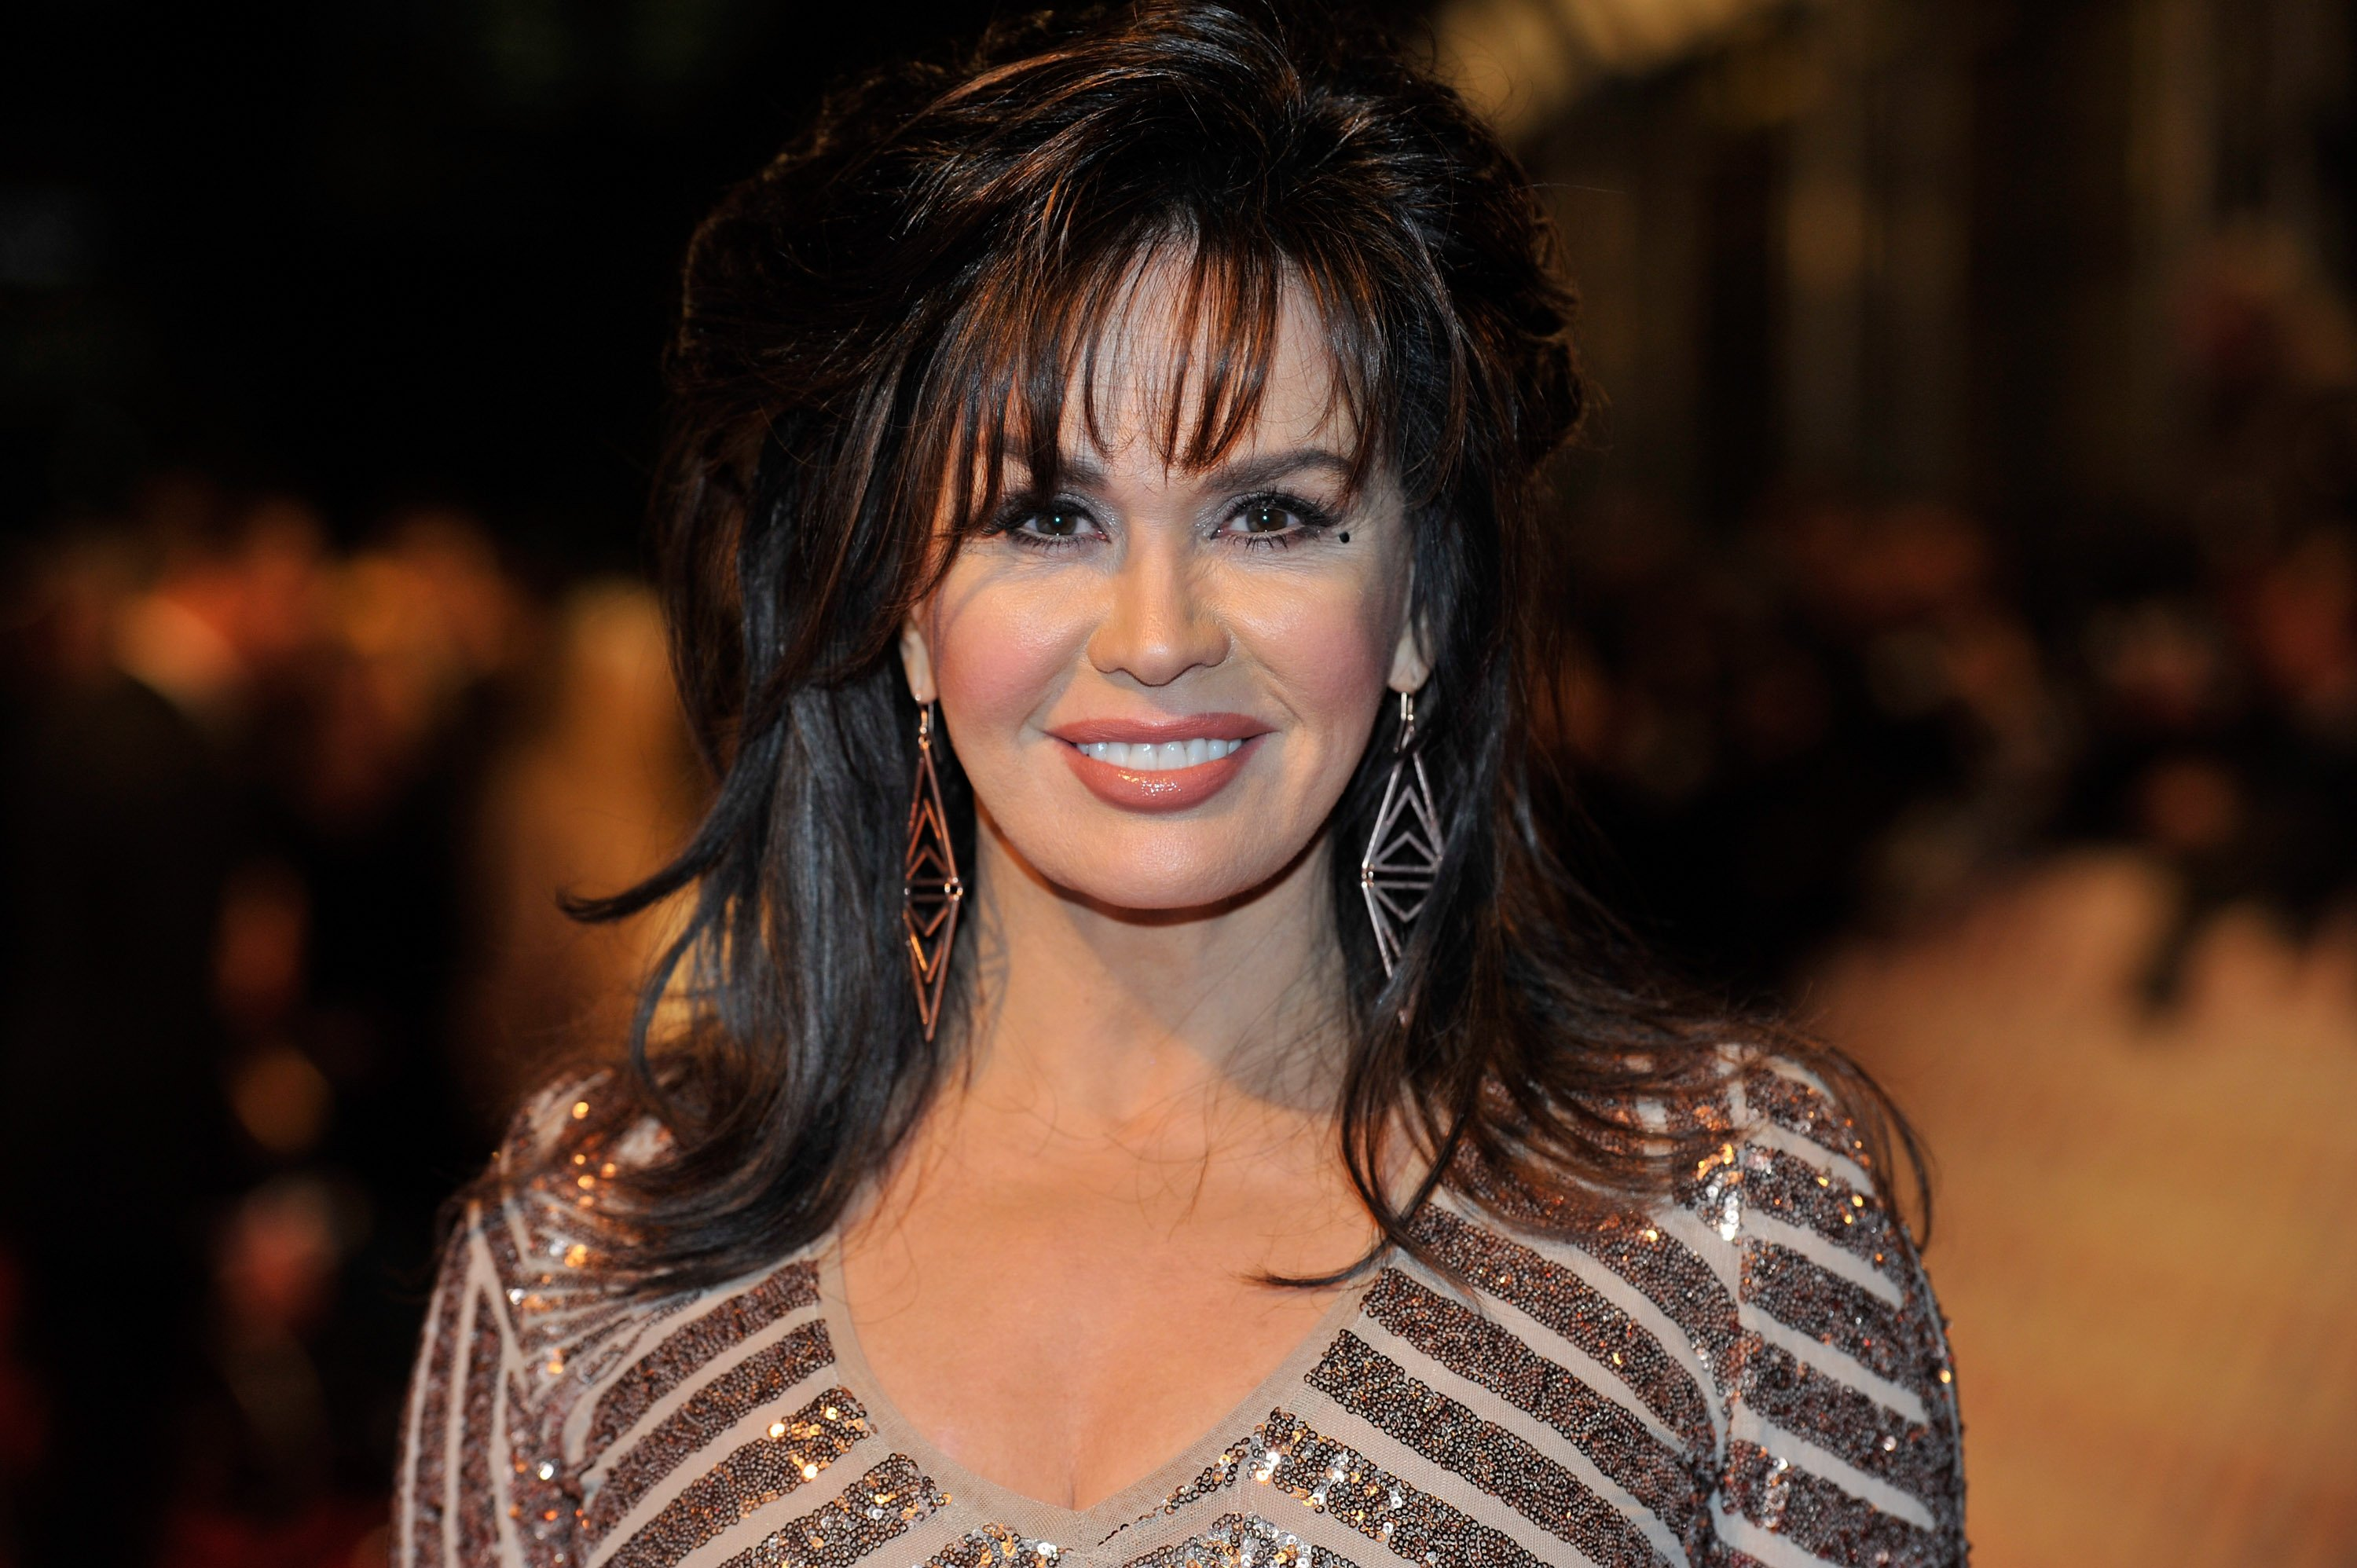 Marie Osmond pictured at the National Television Awards at 02 Arena in London, England in 2013.   Photo: Getty Images